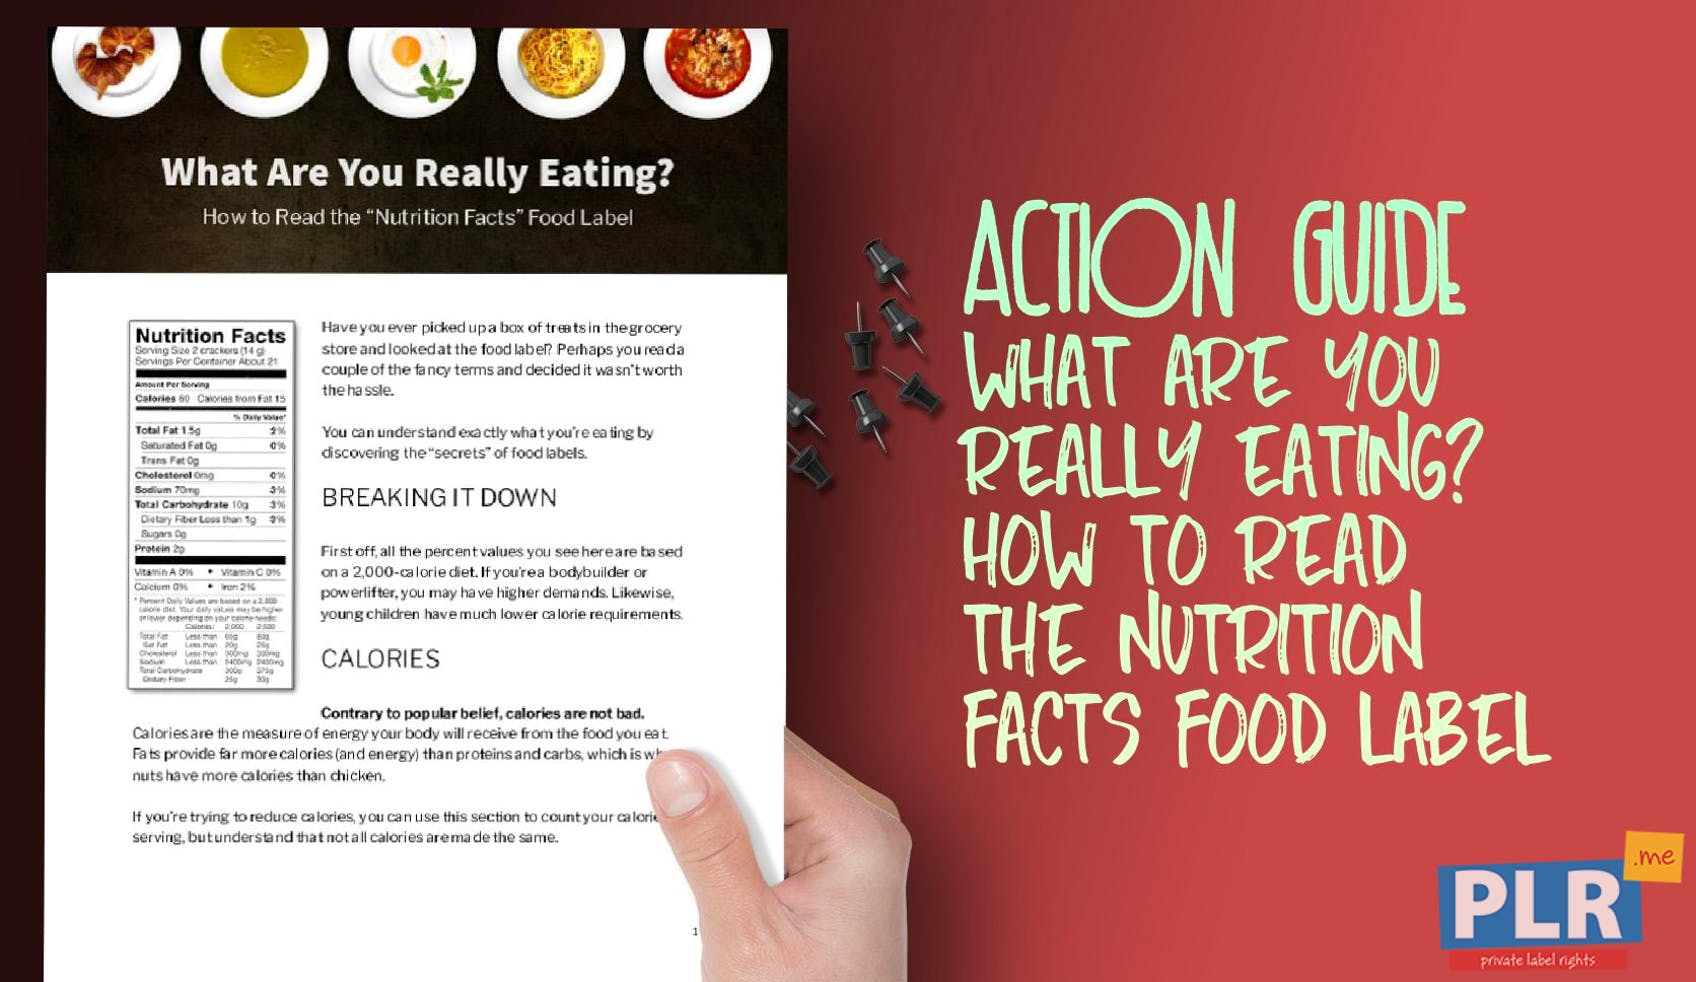 What Are You Really Eating? How To Read The Nutrition Facts Food Label